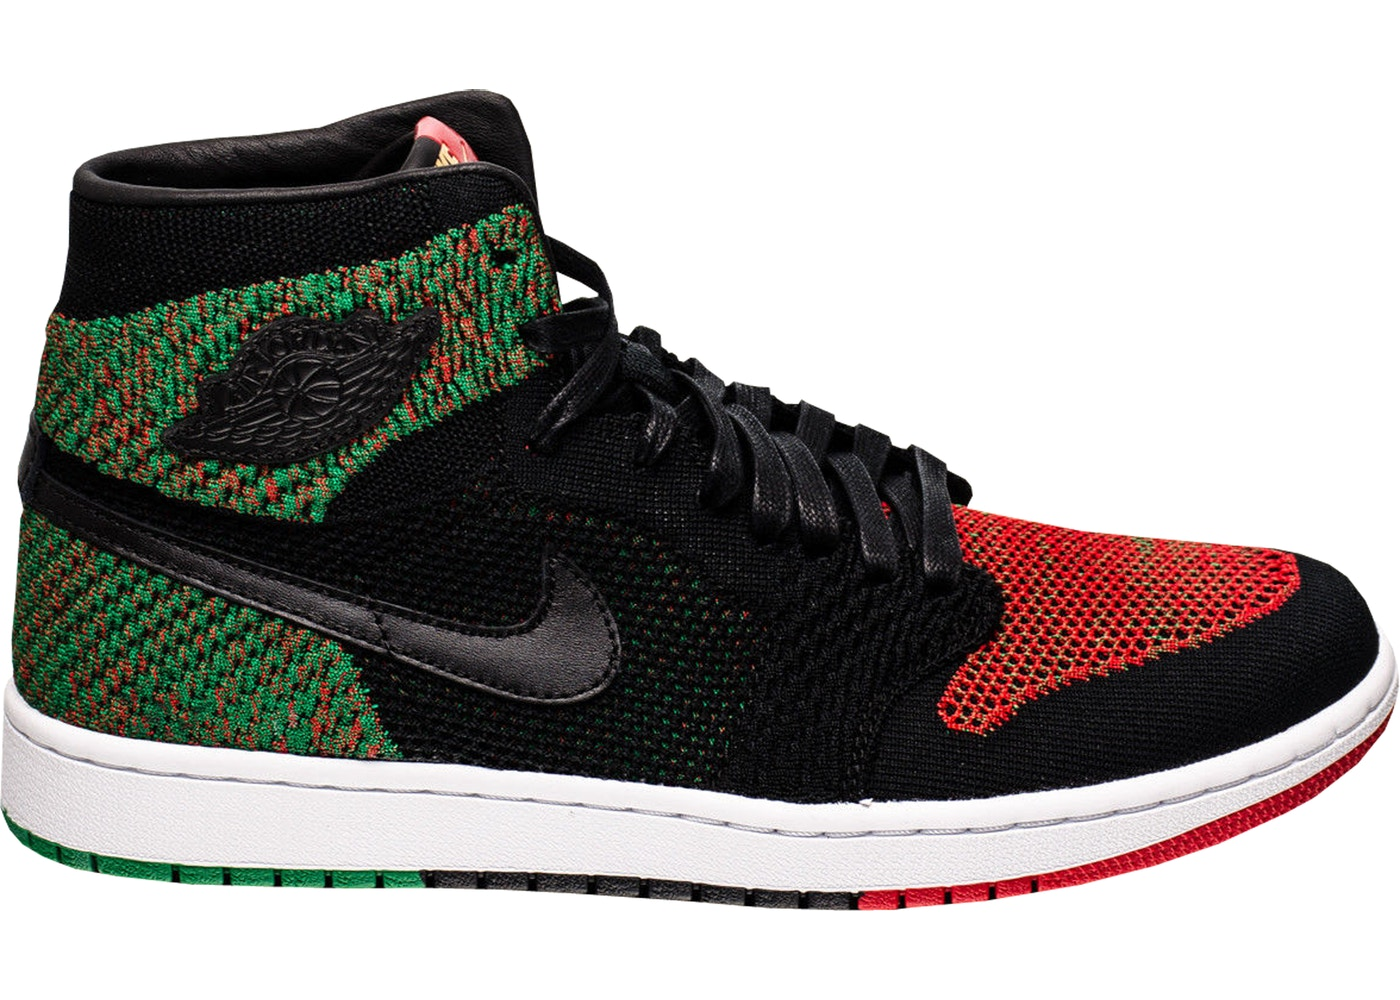 95a89507022f3 Jordan 1 Retro High Flyknit Black History Month (2018) - AA2426-026